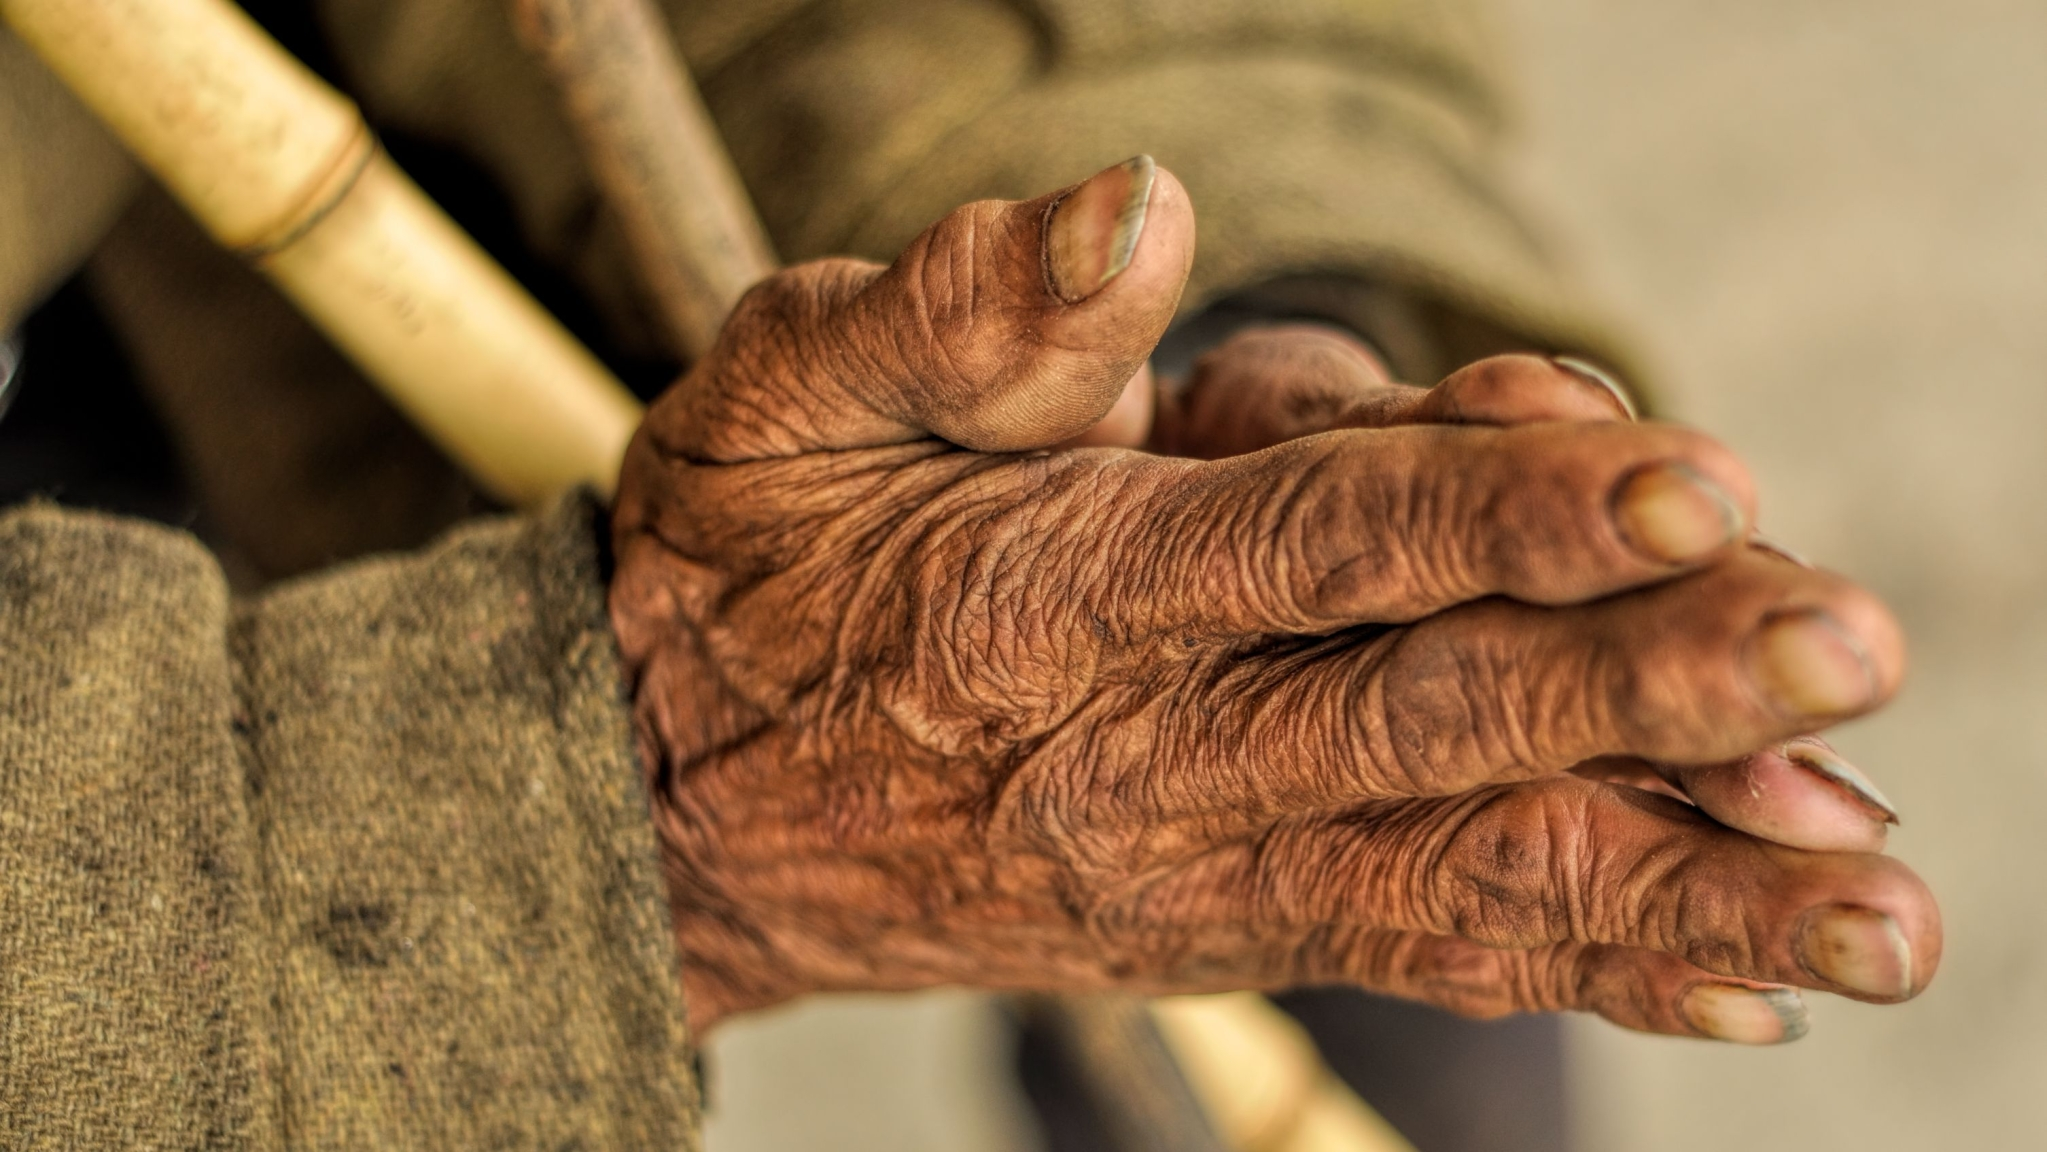 Ageing Process Gets Accelerated Due to Poverty